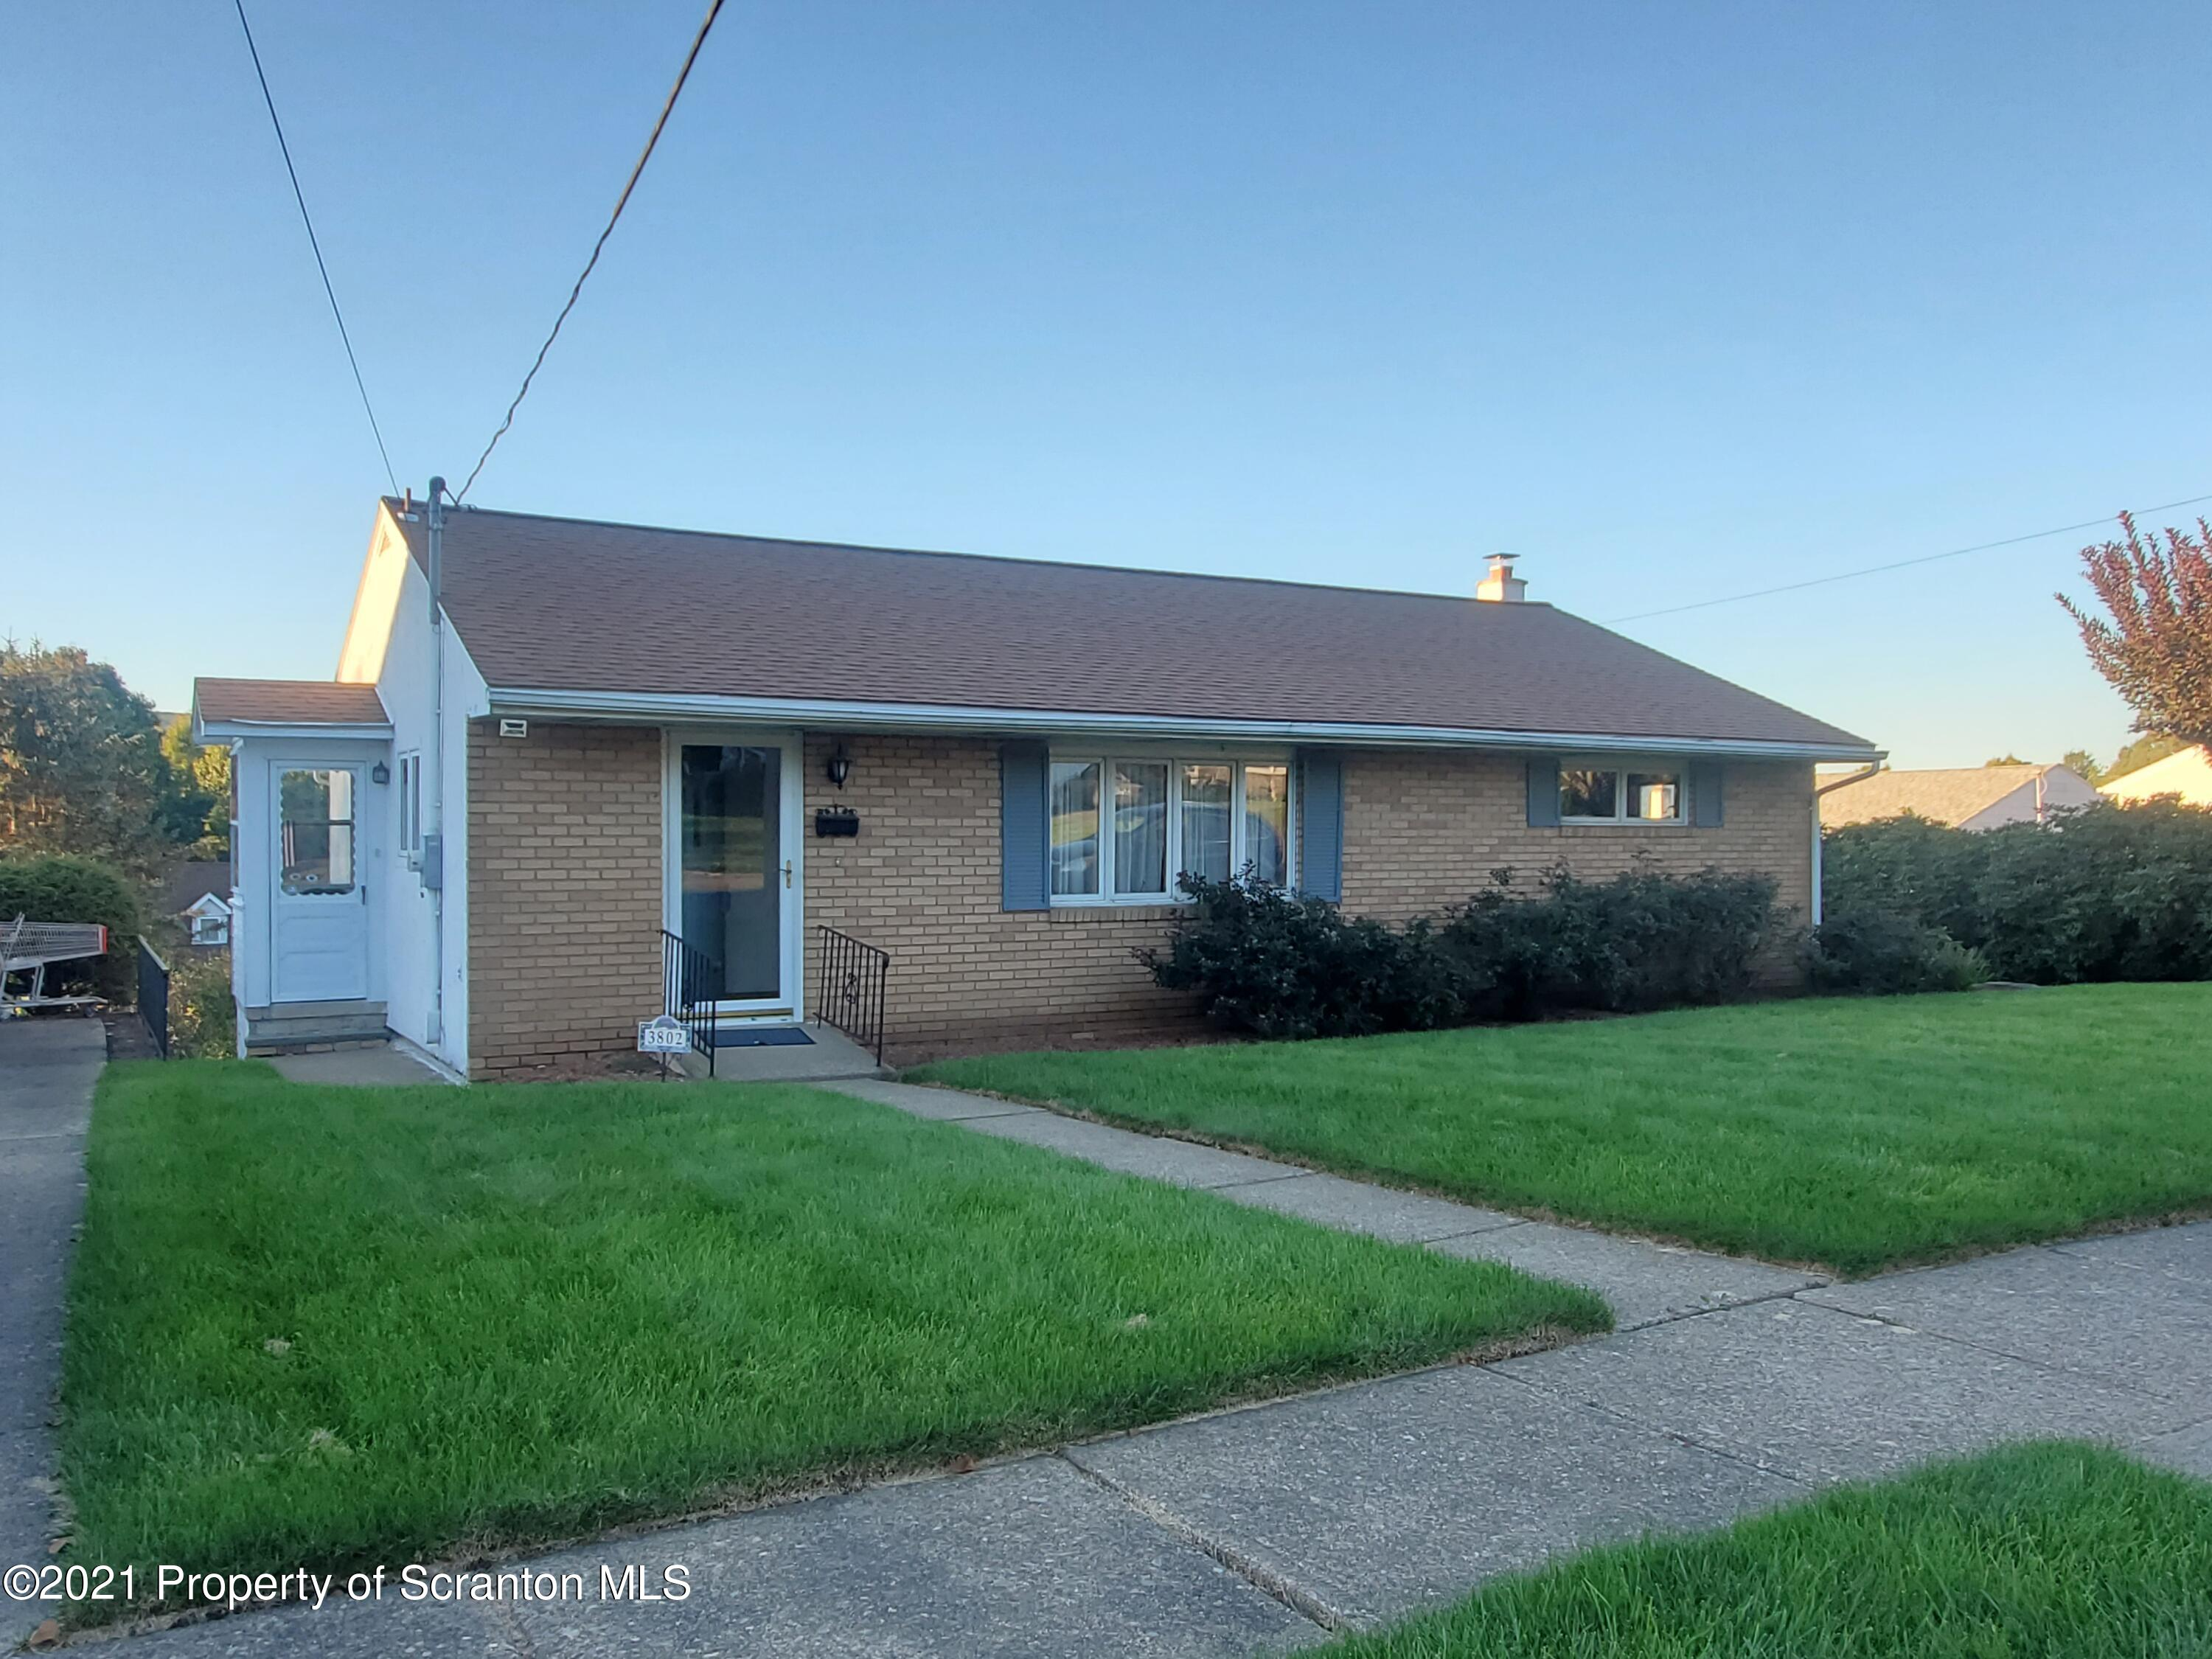 3802 Wylam Ave, Moosic, Pennsylvania 18507, 3 Bedrooms Bedrooms, 7 Rooms Rooms,1 BathroomBathrooms,Single Family,For Sale,Wylam,21-4422